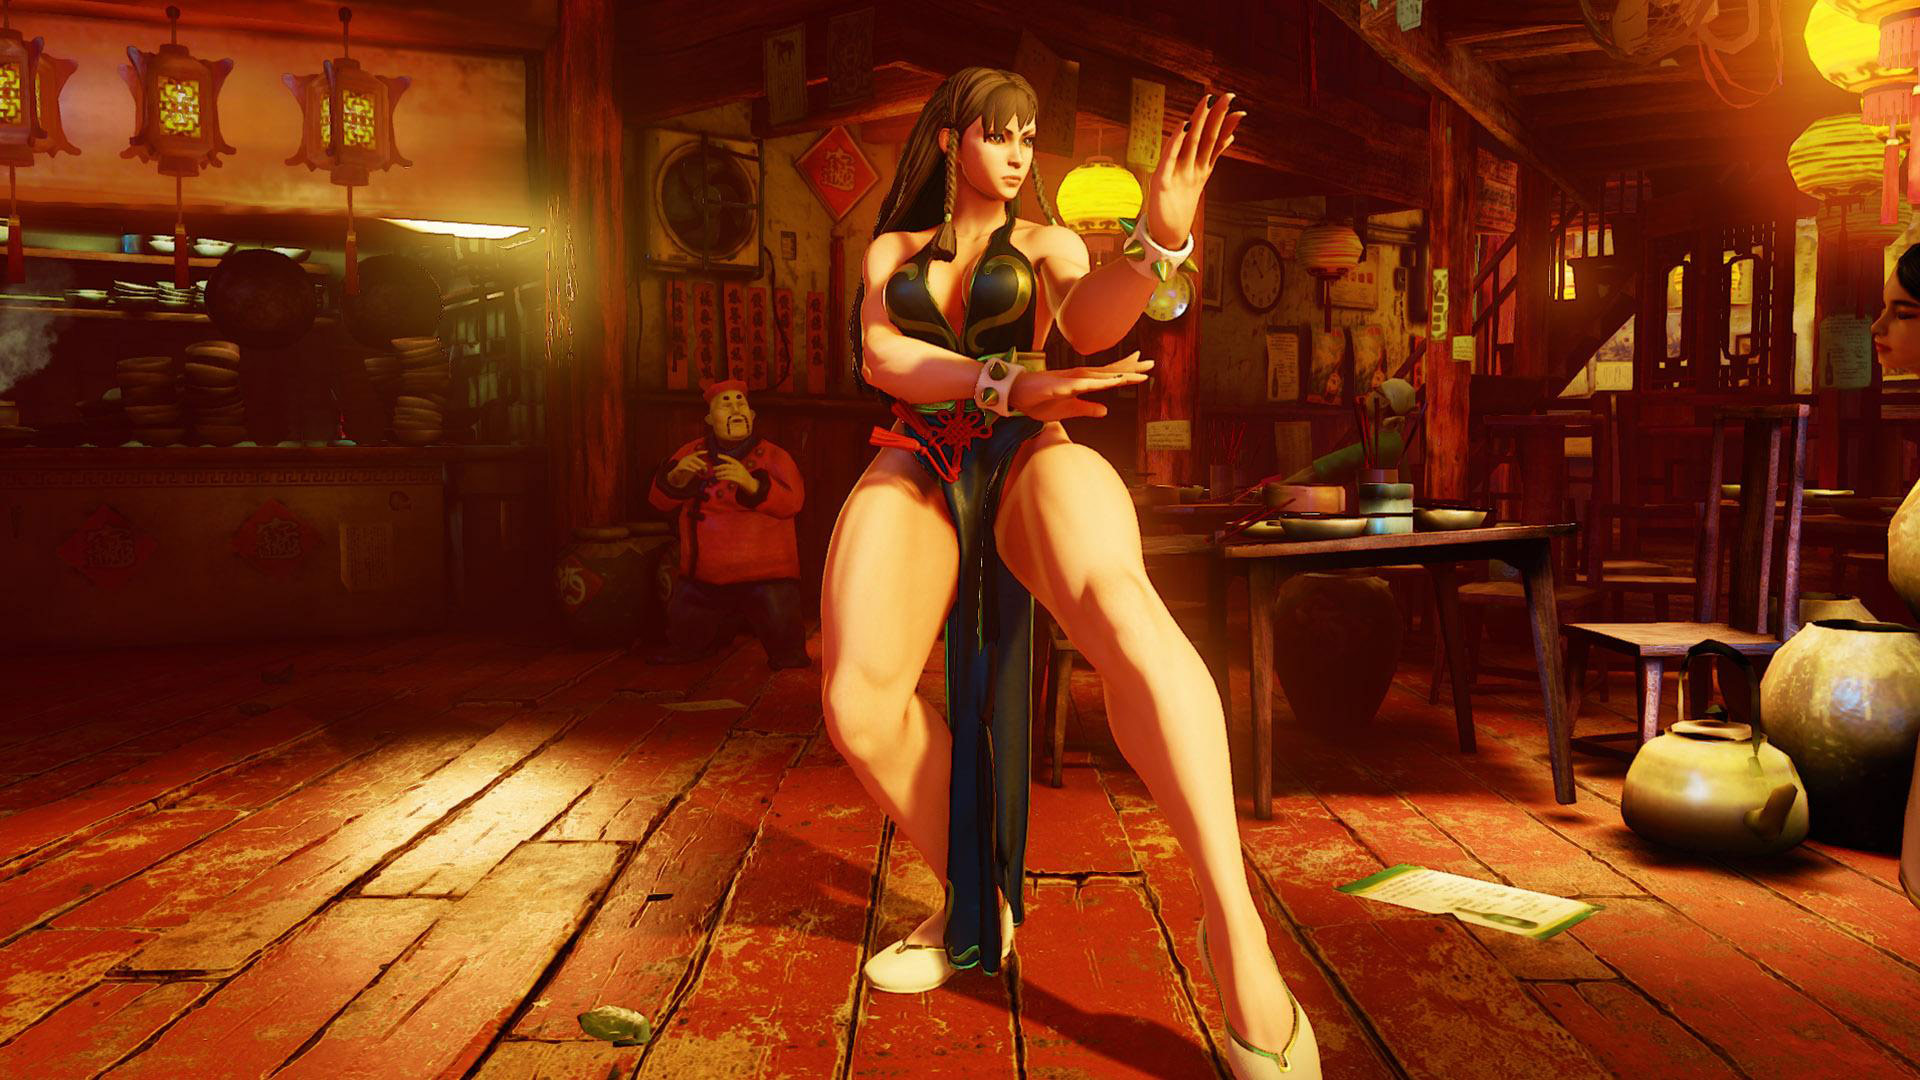 Chun Li Alt Outfit Street Fighter 5 Gallery 8 Out Of 10 Image Gallery